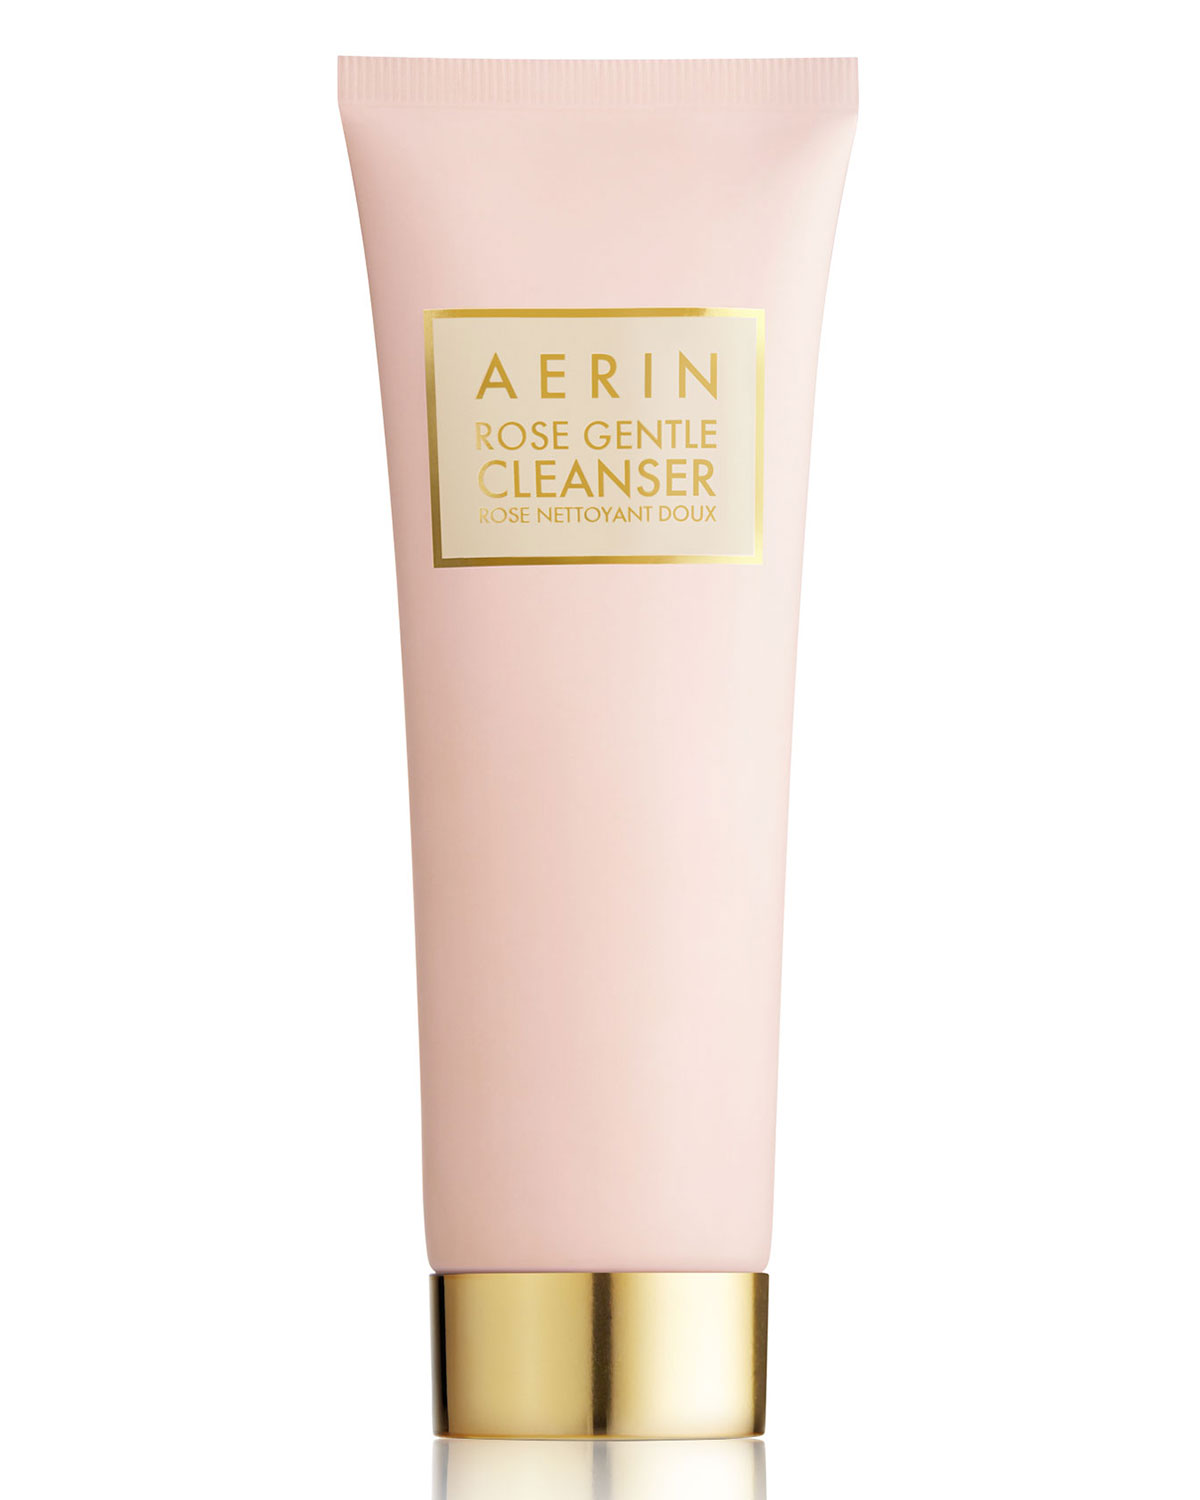 Aerin ROSE GENTLE CLEANSER, 4.2 OZ.